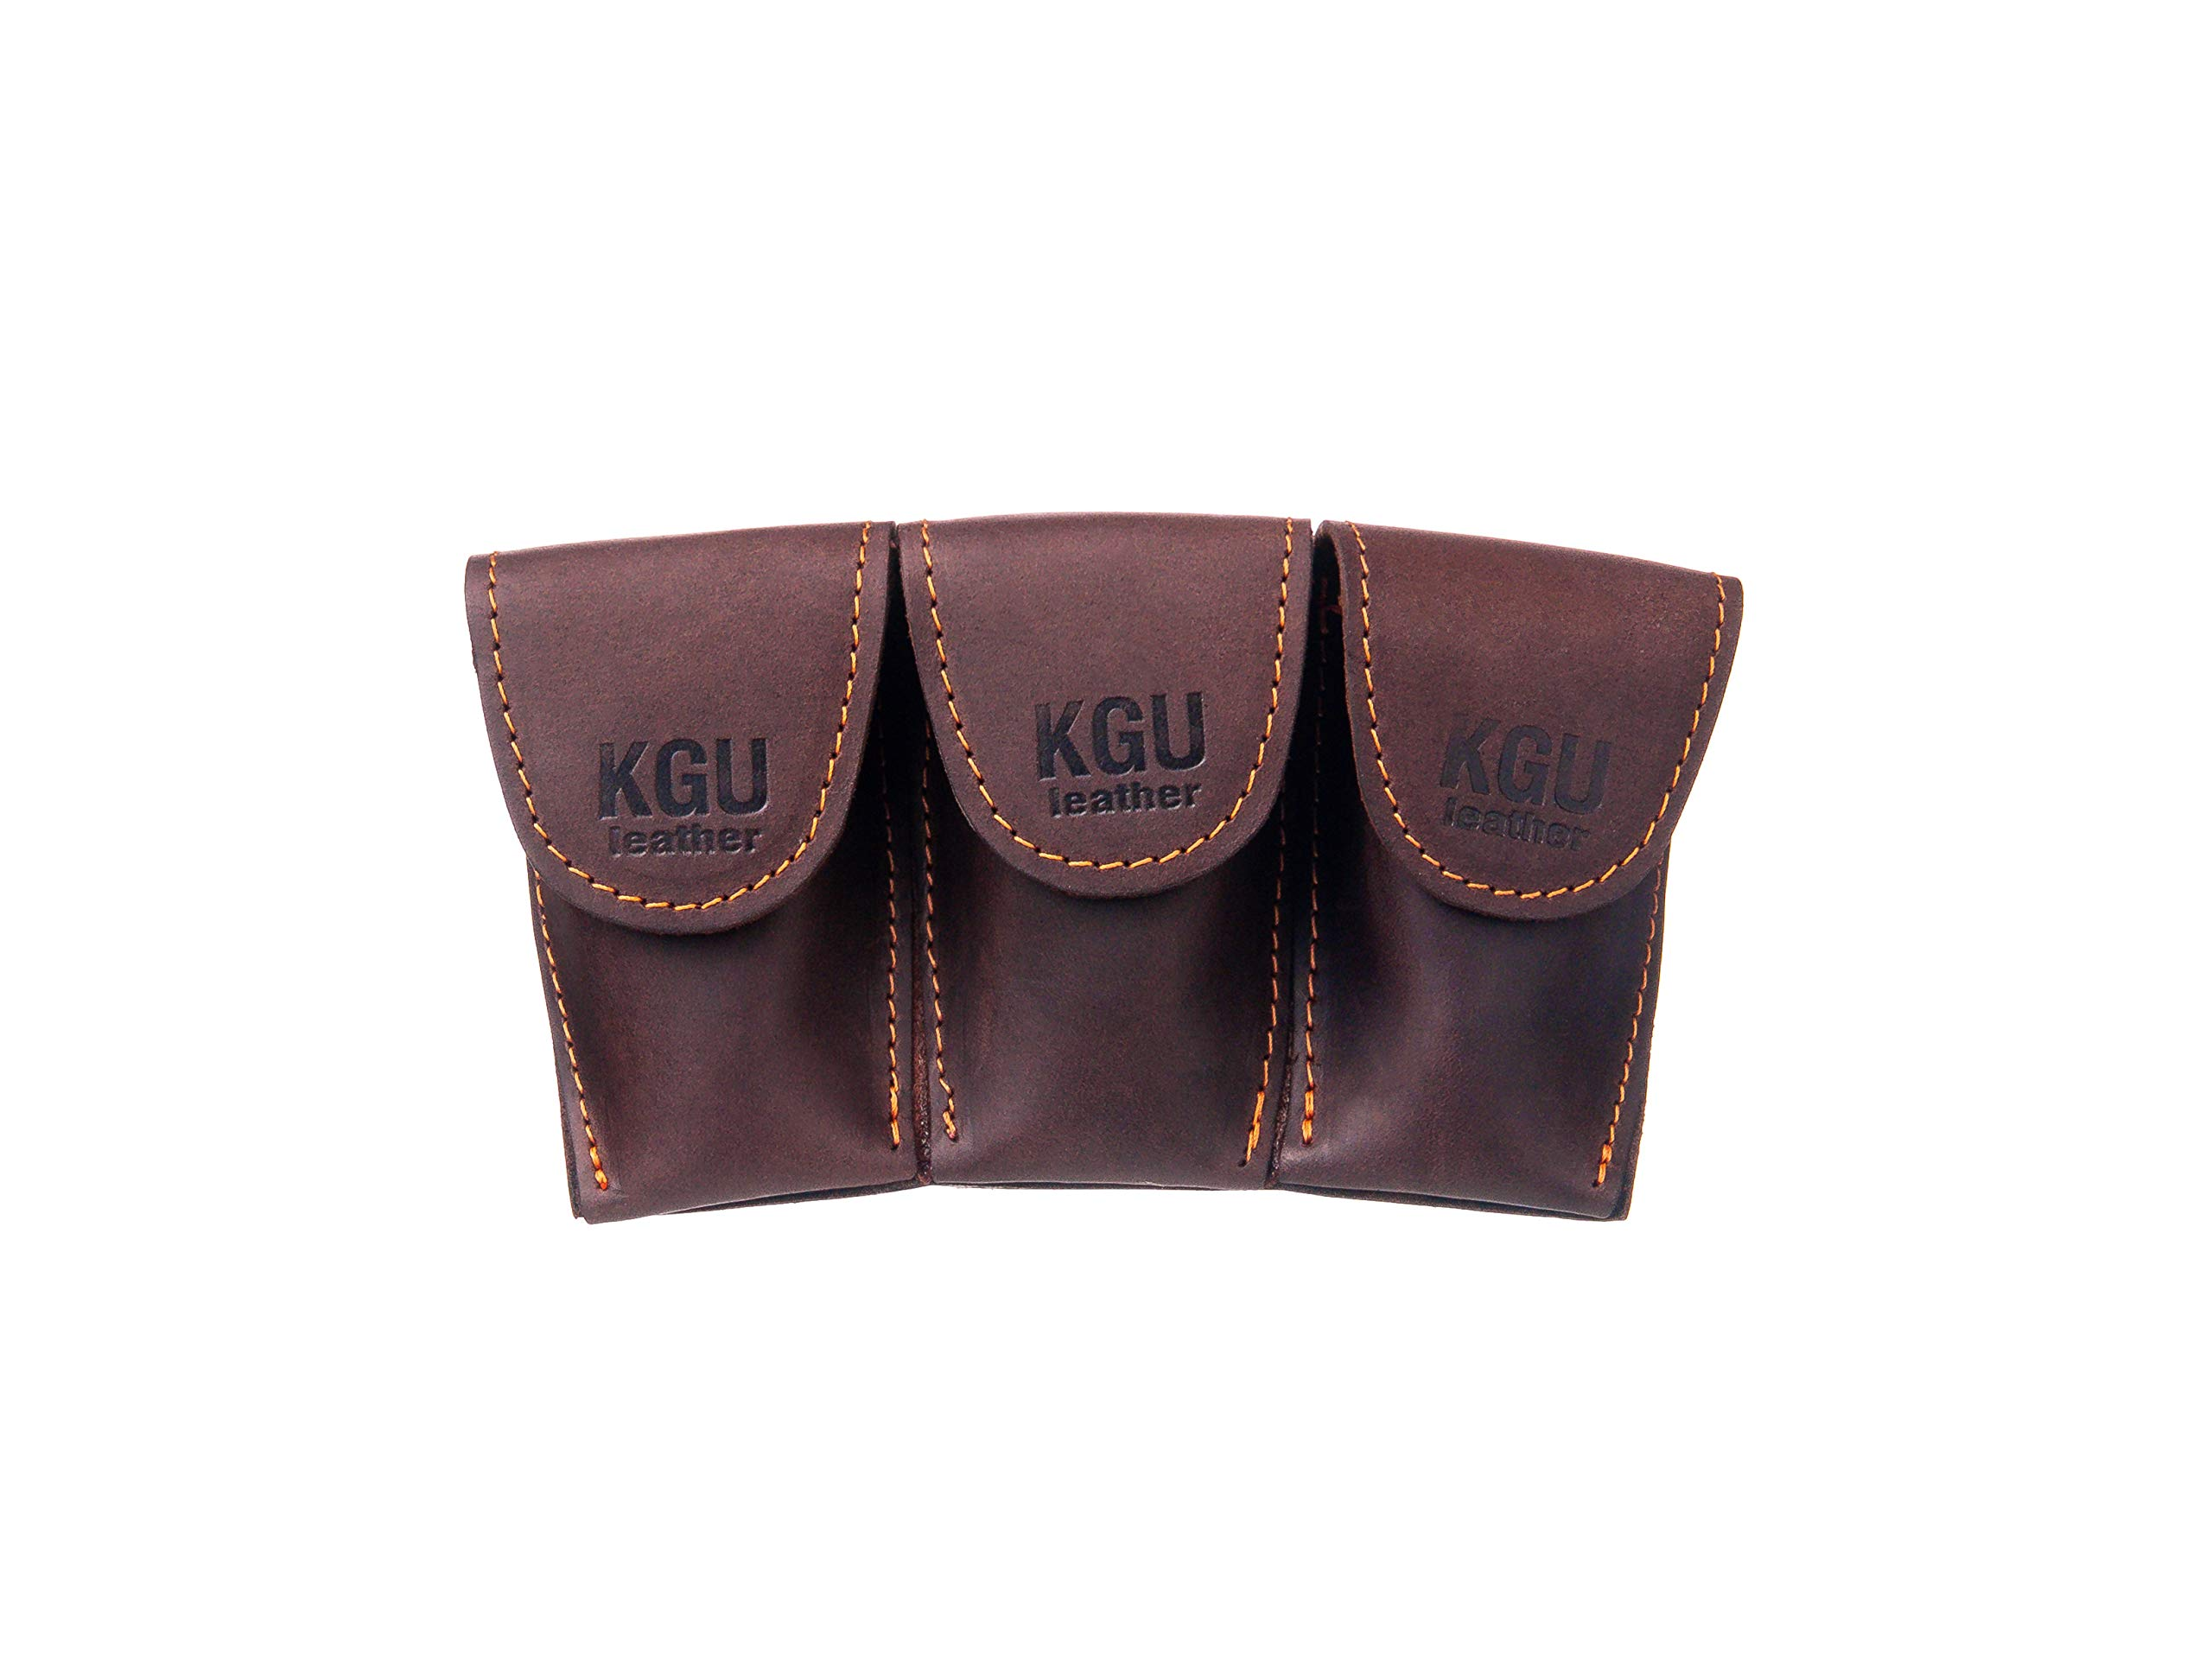 FRENCH HORN MOUTHPIECE POUCH (3 MODELS). CRAZY HORSE LEATHER. (Triple, Brown)